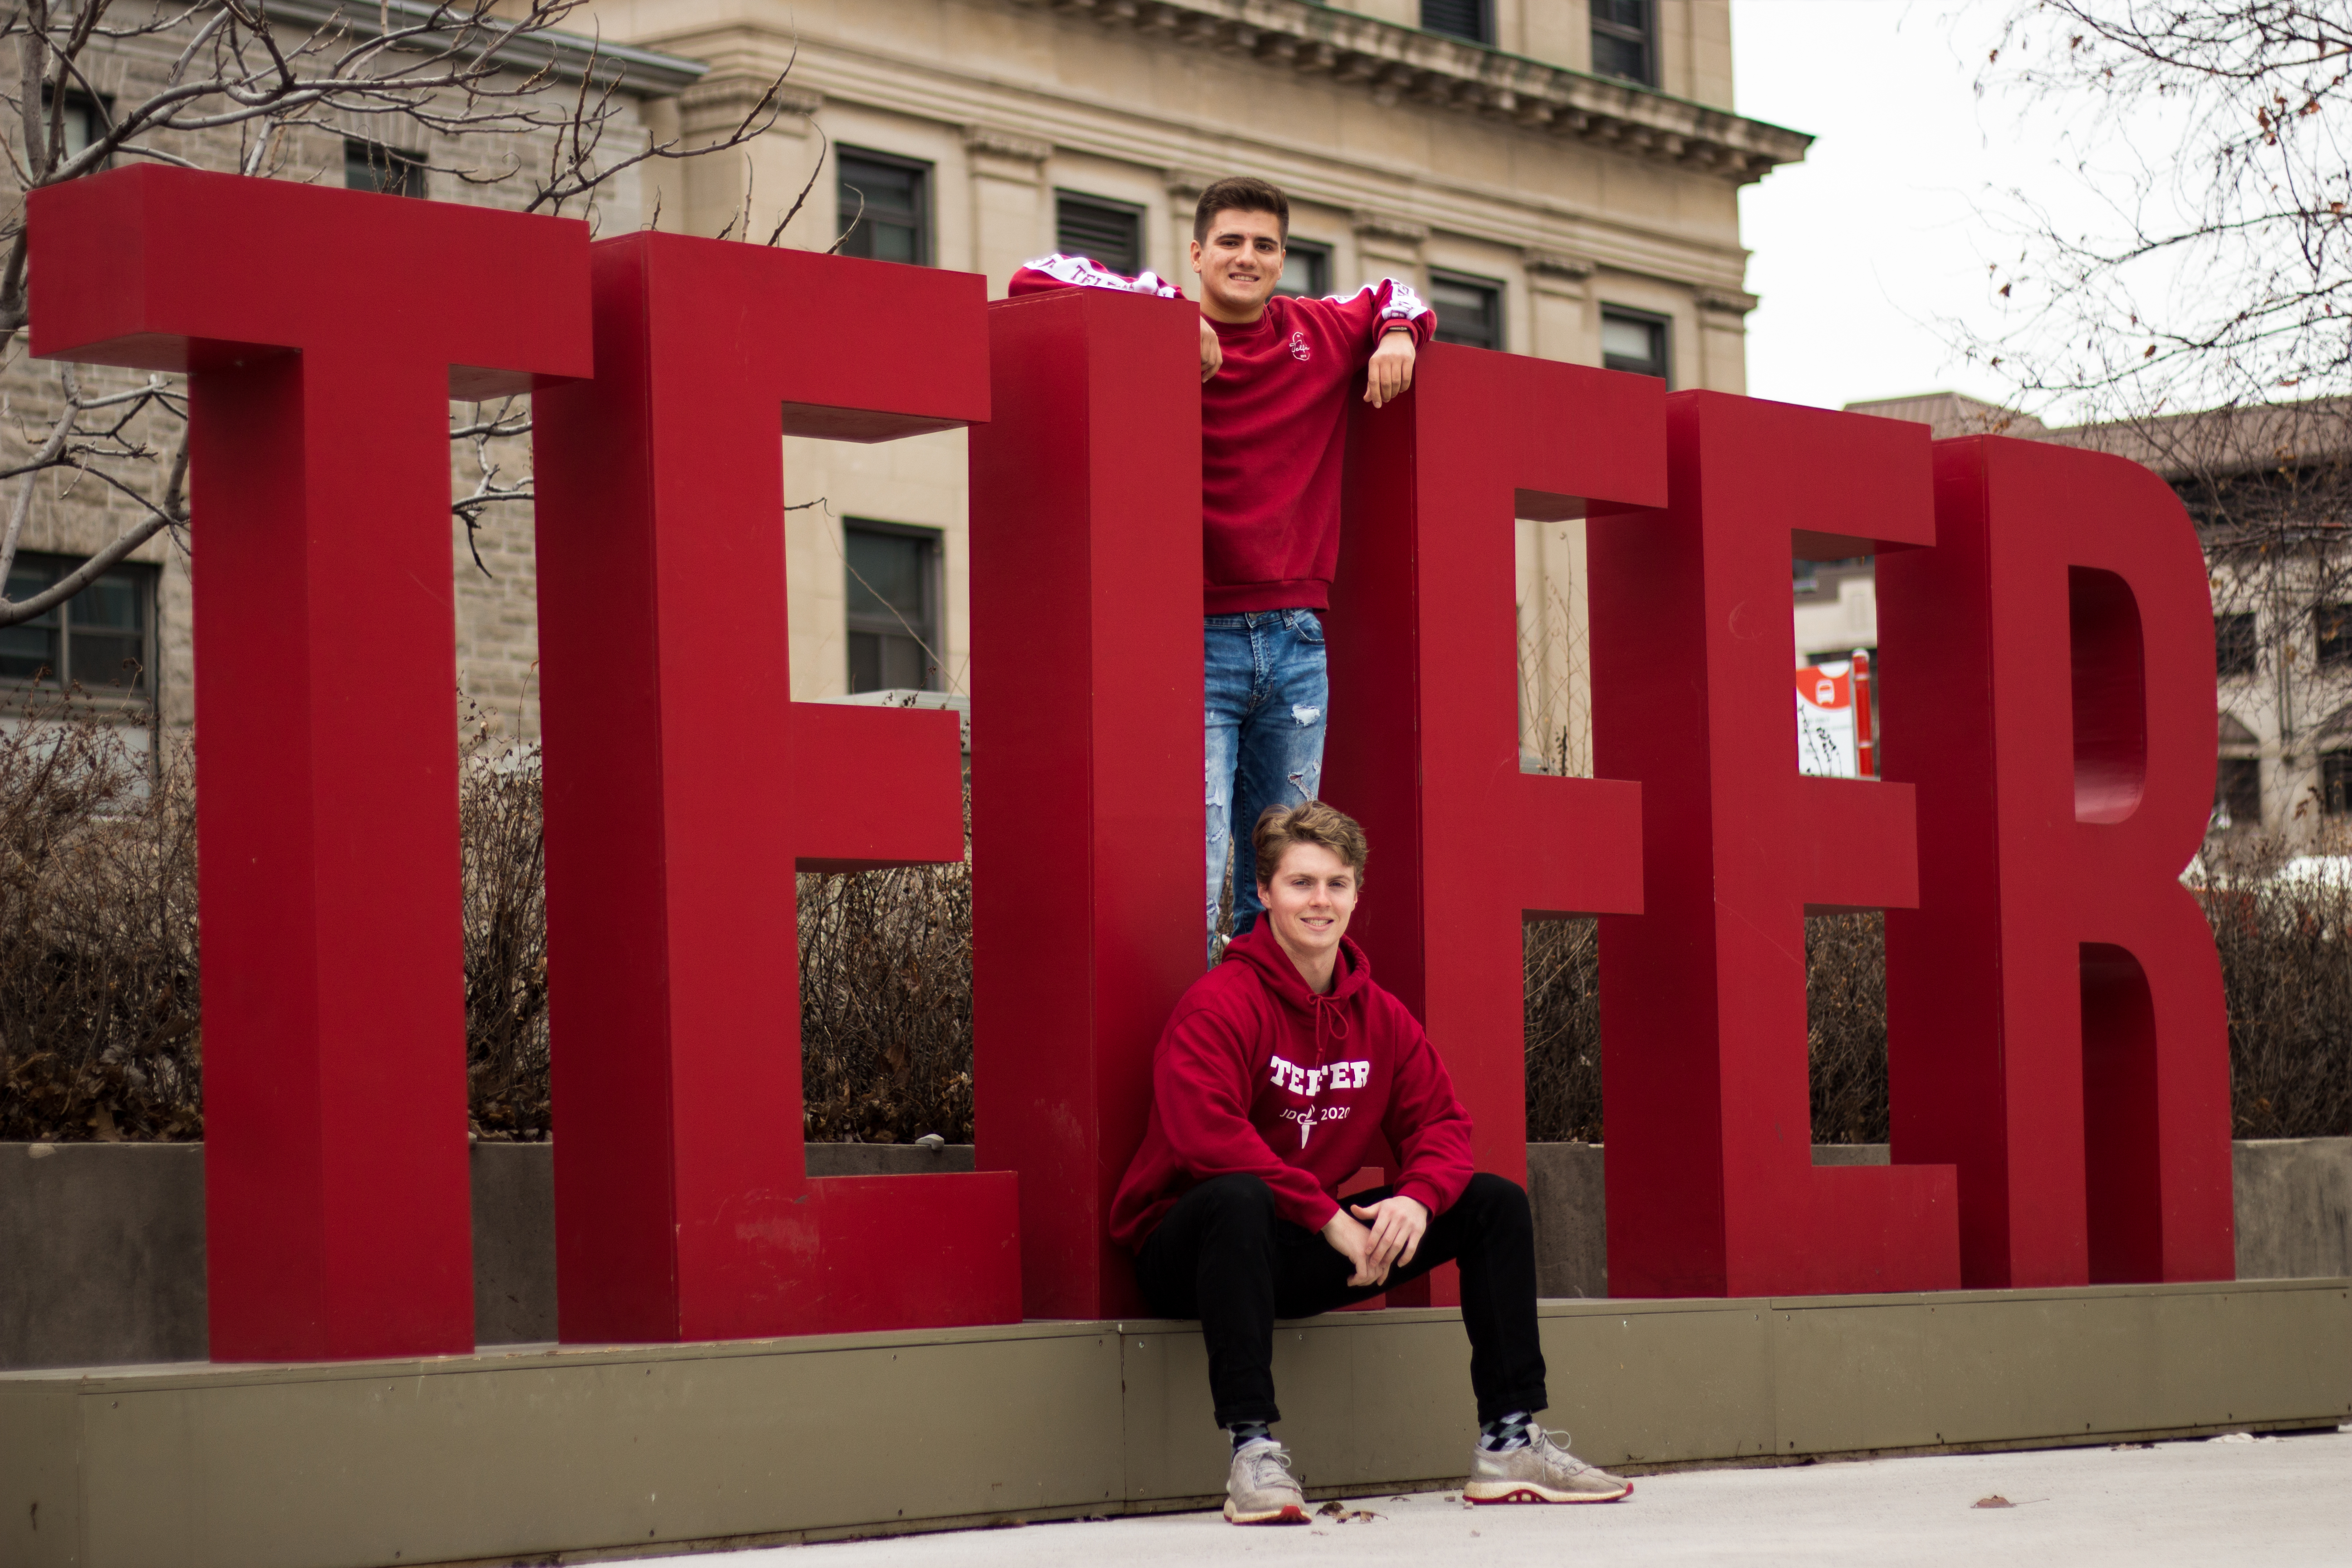 Telfer students in front of the Telfer sign on campus